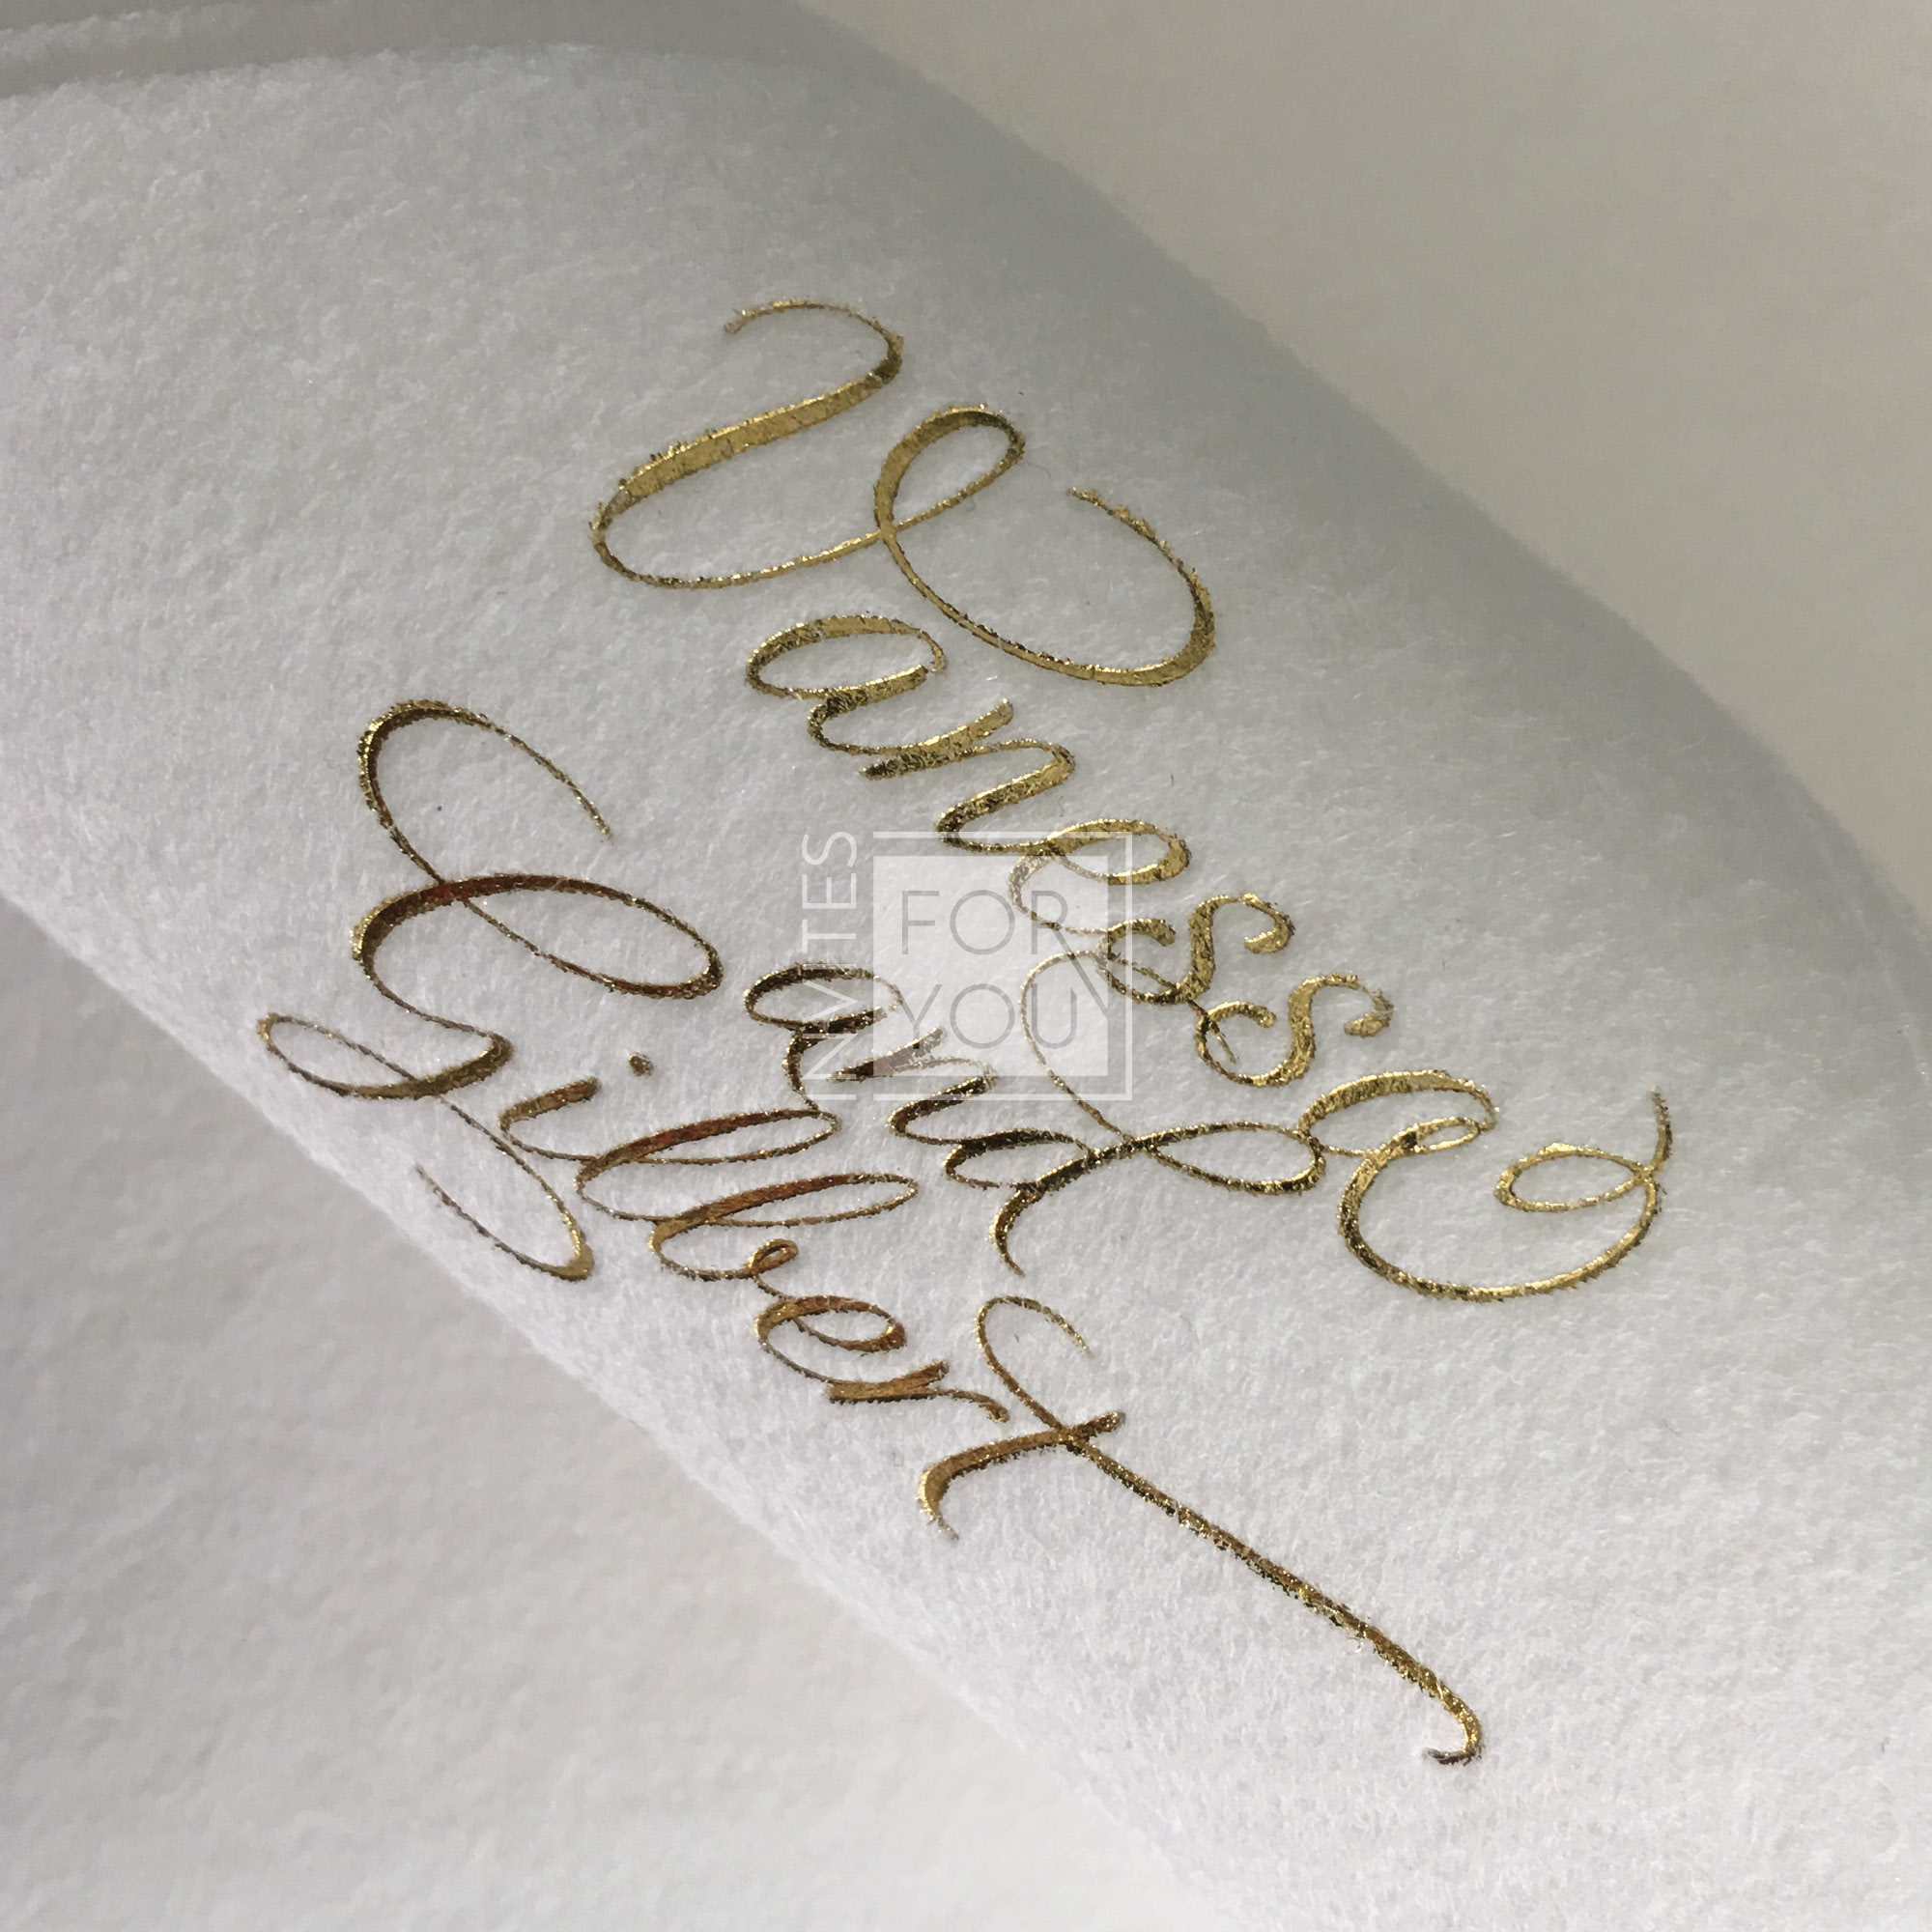 High end personalised napkins